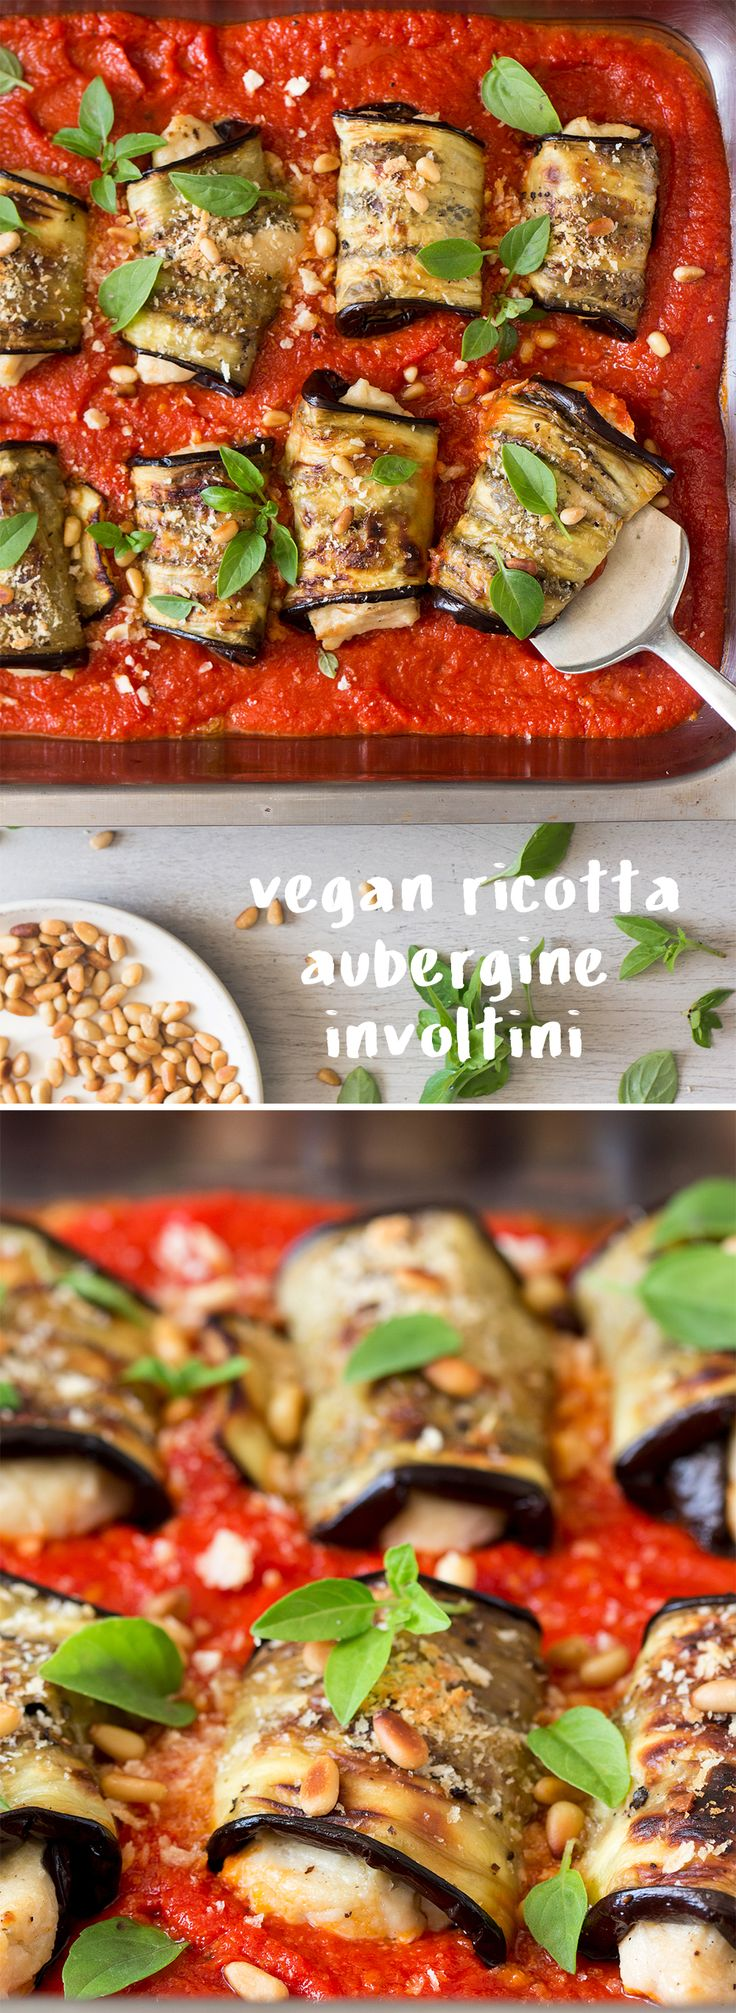 Aubergine involtini with vegan ricotta